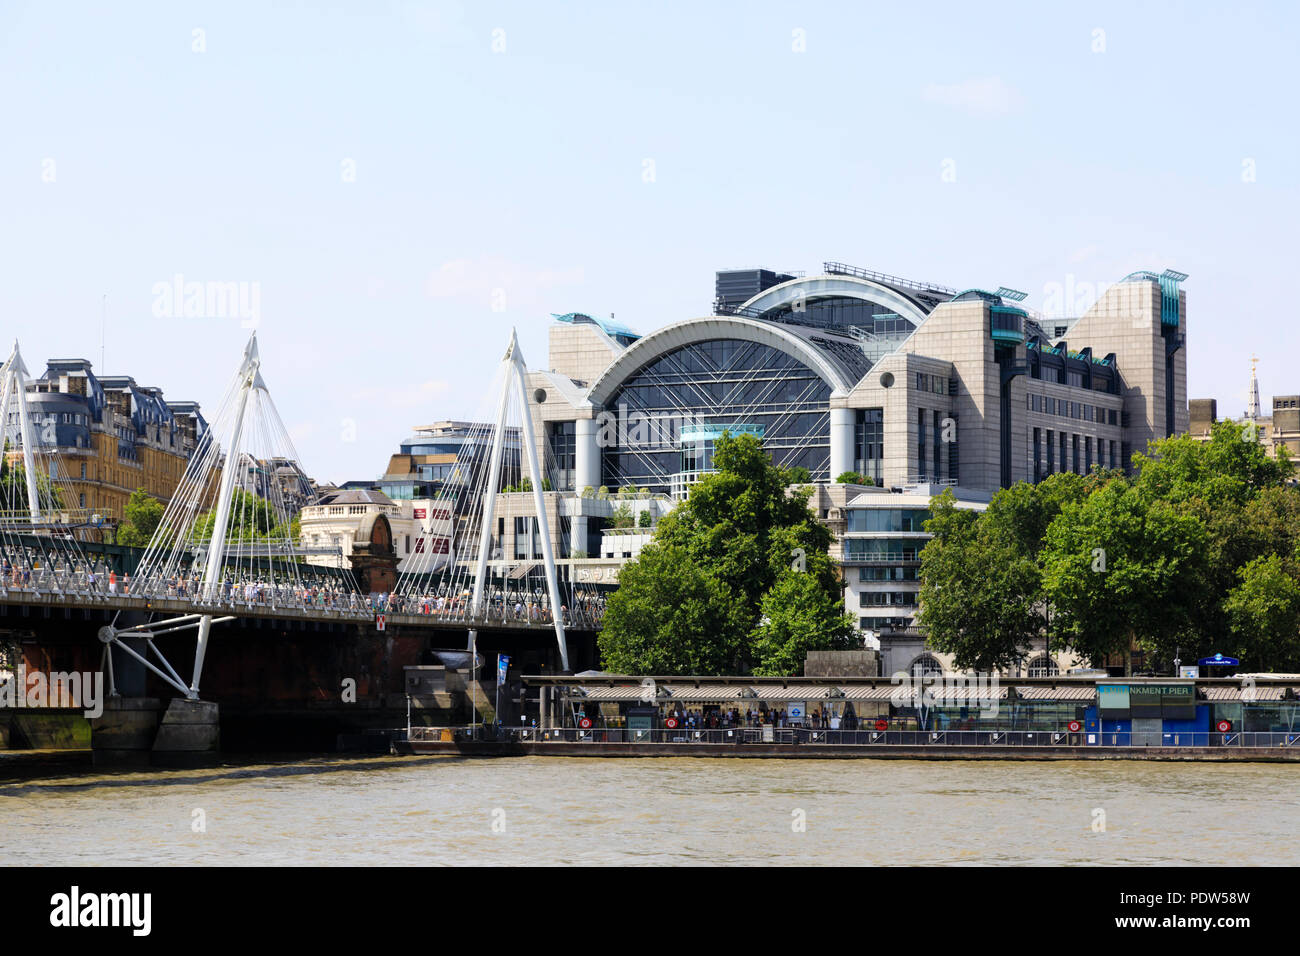 Charing Cross railway station on the north bank of the River Thames, London. Hungerford and Golden Jubilee bridge with crowds of tourists. - Stock Image